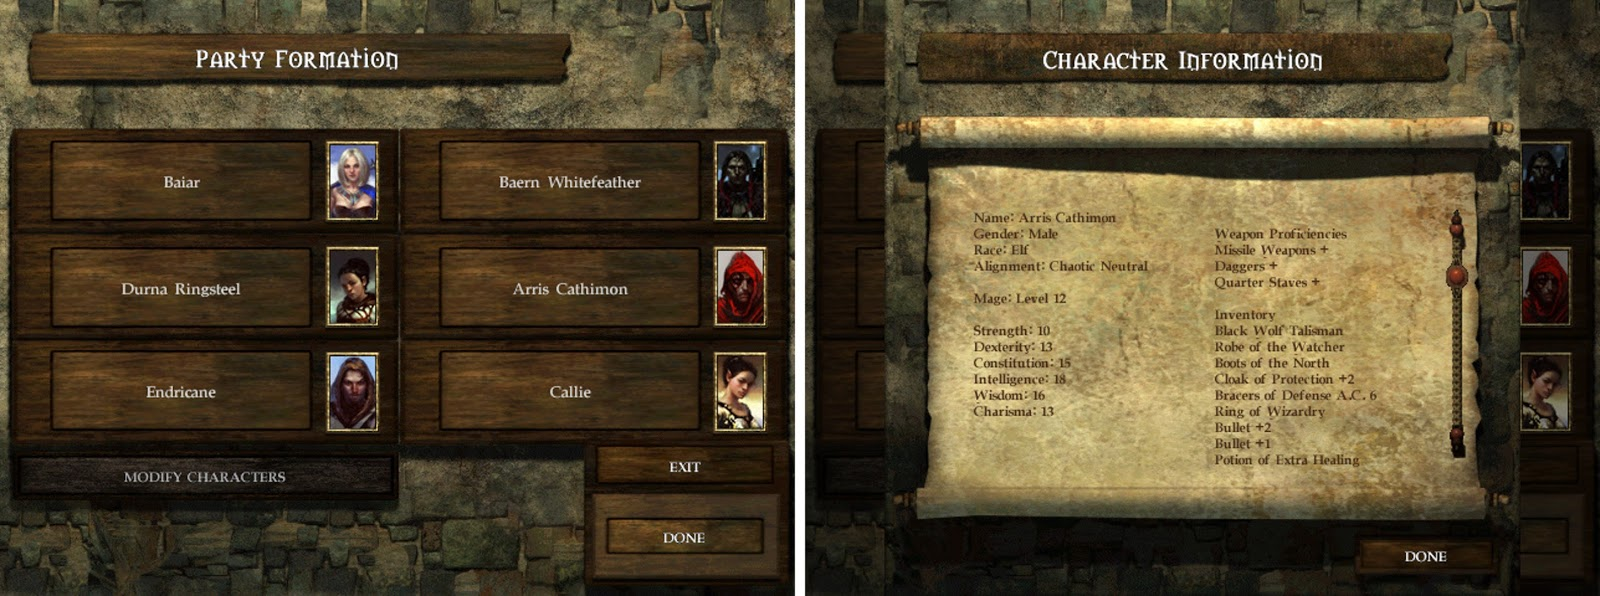 Icewind Dale Enhanced Edition v1 4 and v2 4 Review | Lilura1